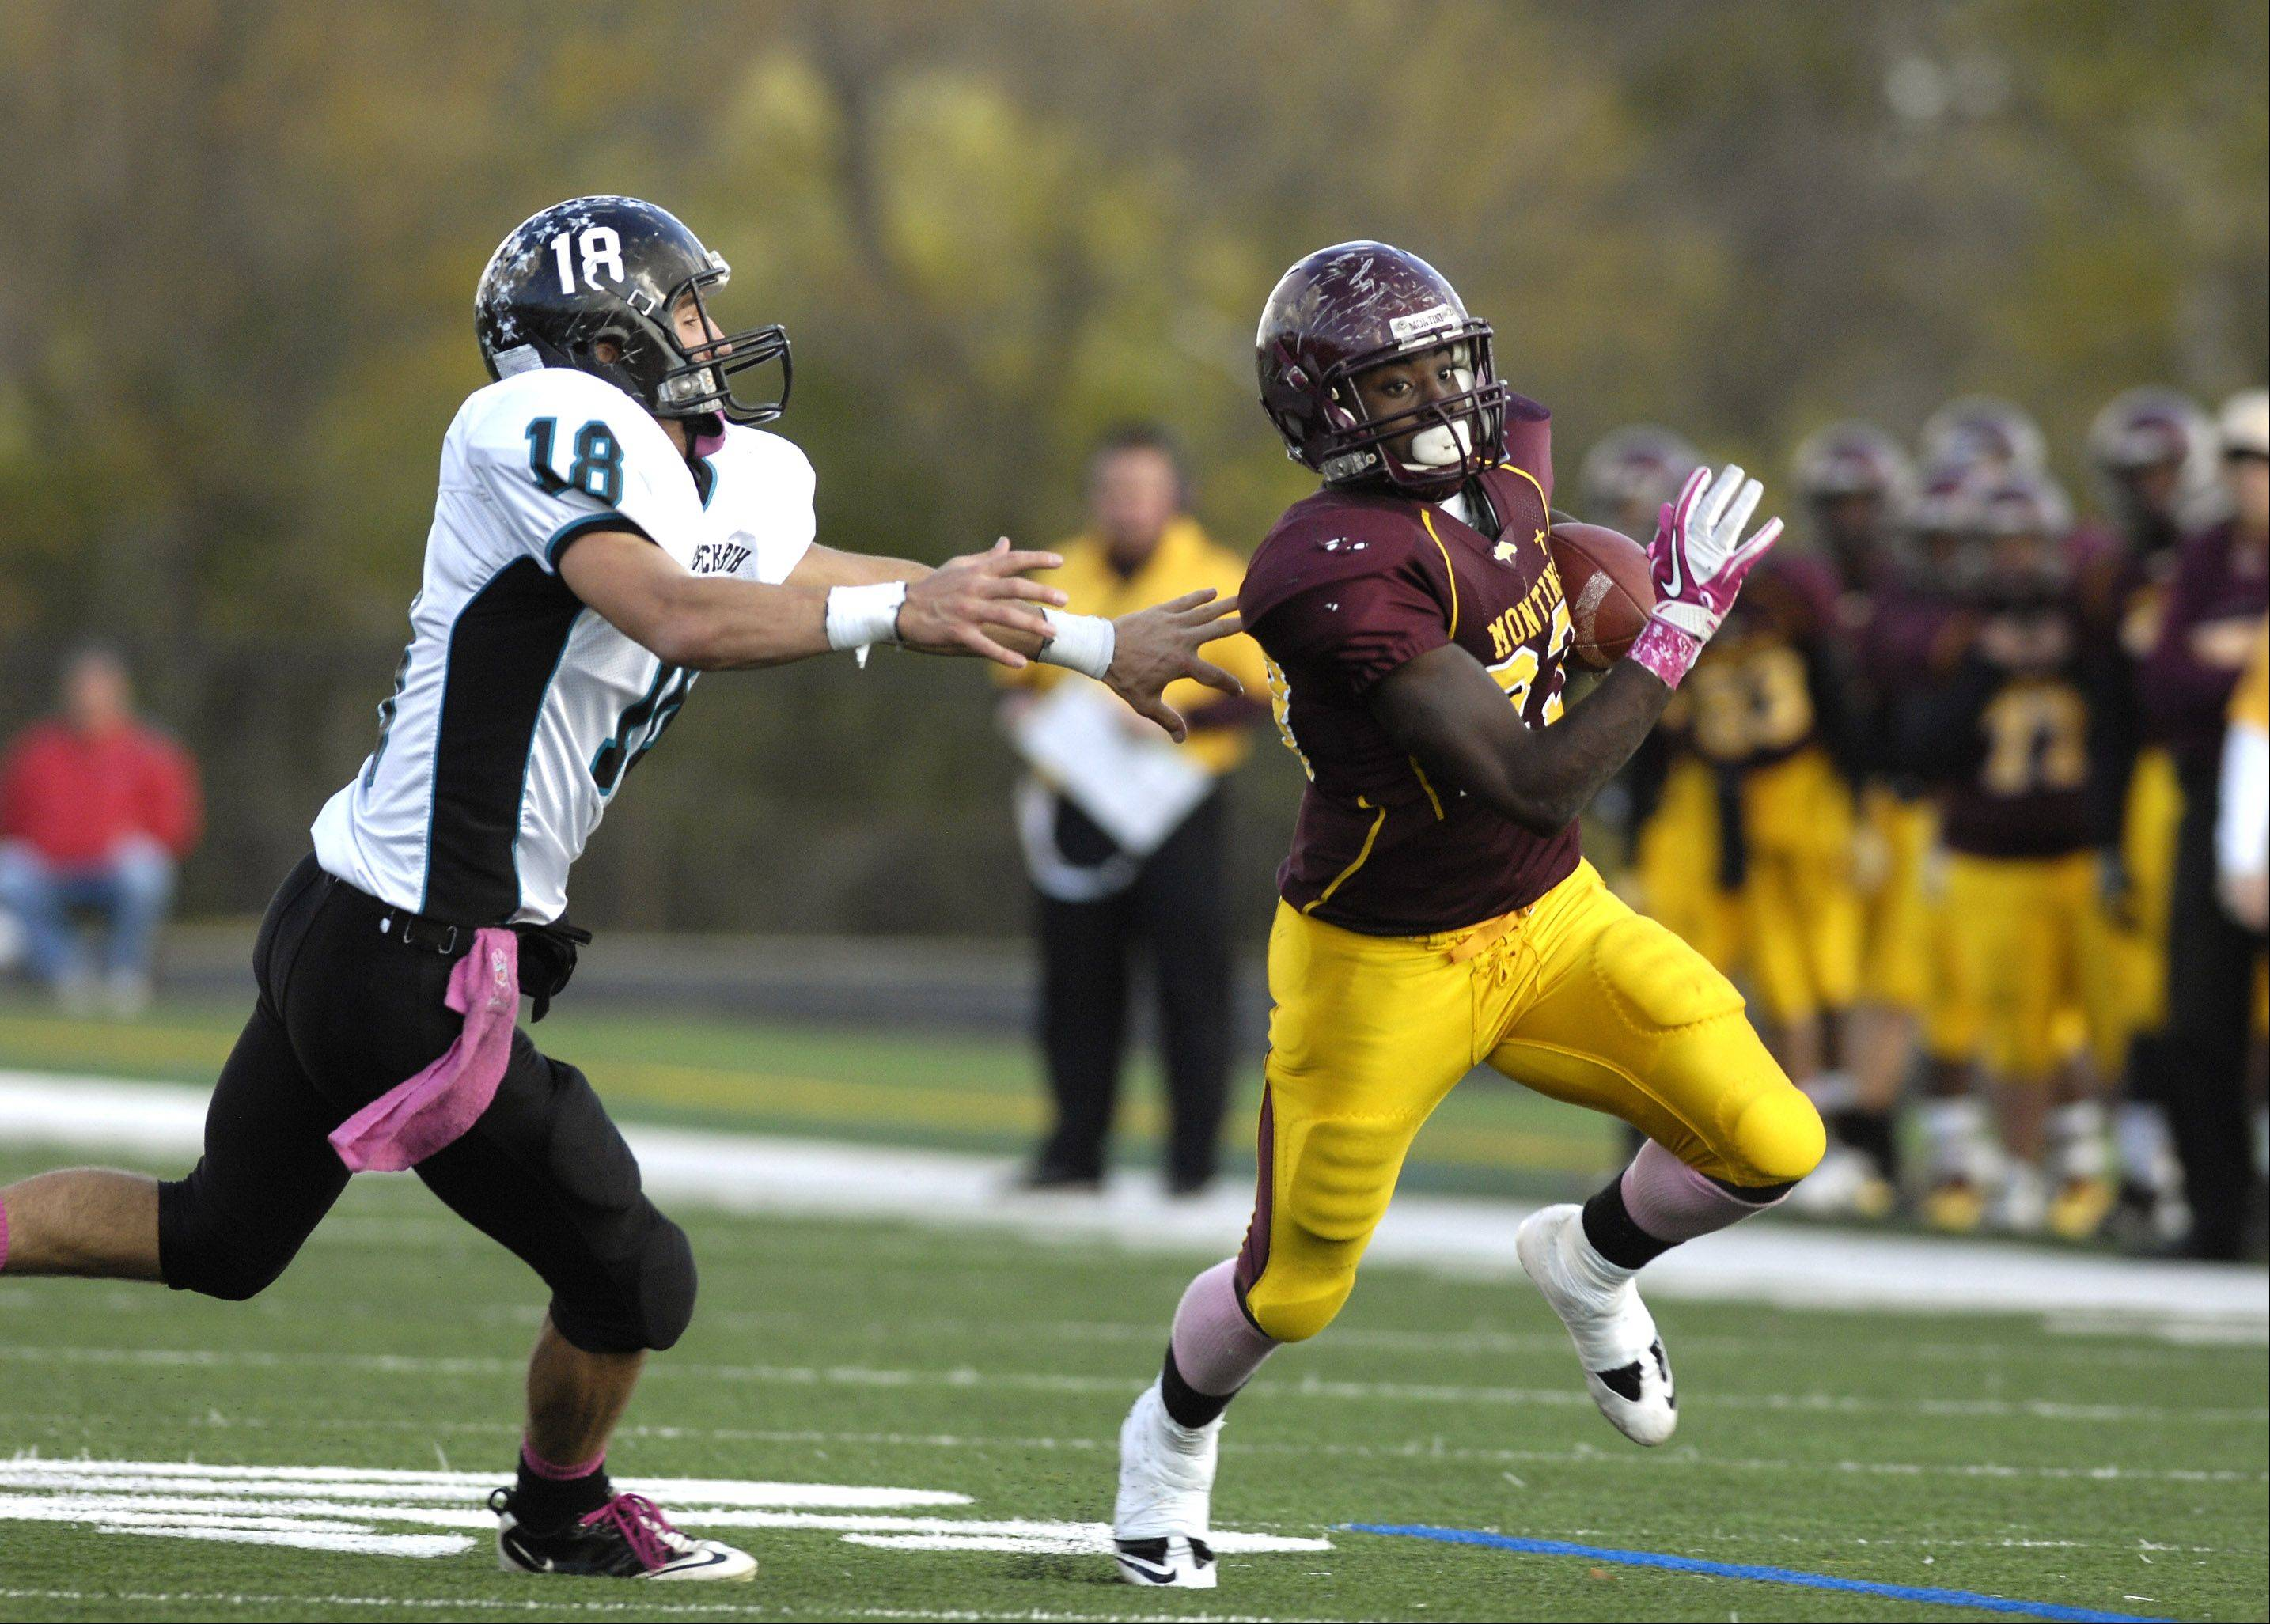 Dimitri Taylor of Montini High School scrambles away from Brian Loftin of Woodstock North, to score a 4th quarter touchdown, during the IHSA 5A playoff game.